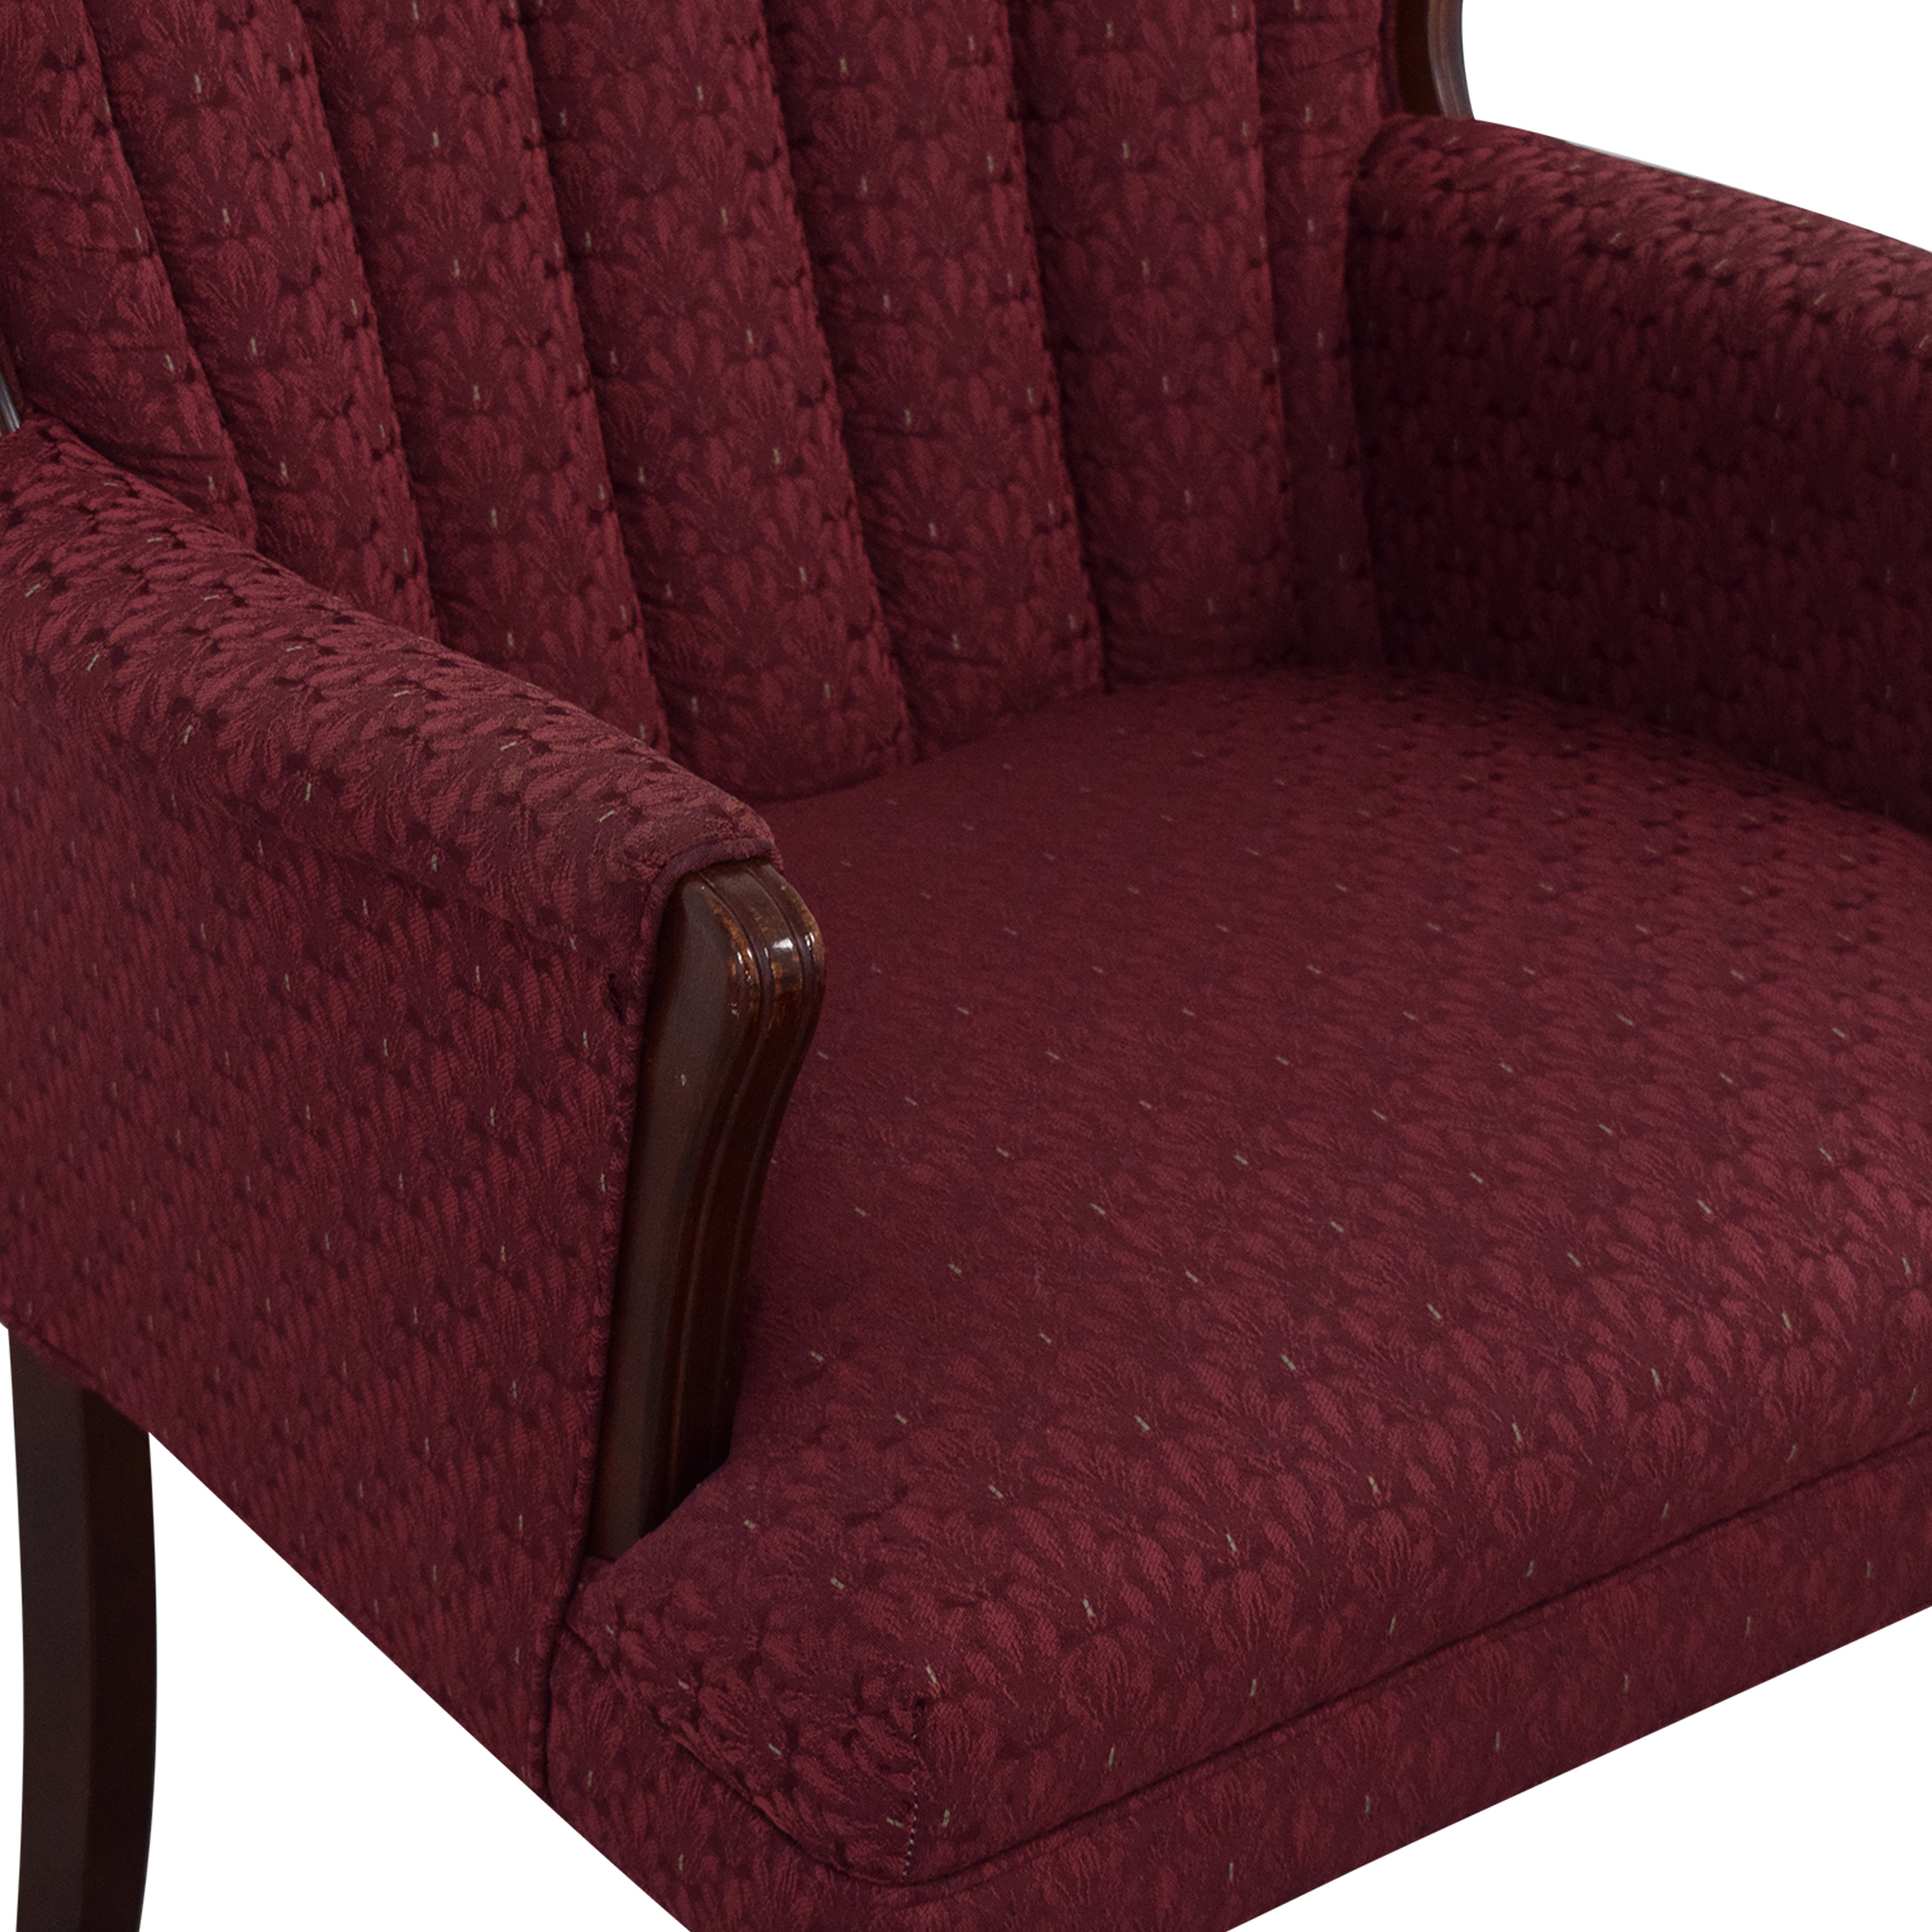 Best Chairs Queen Anne Scallop-Back Chair and Ottoman / Accent Chairs